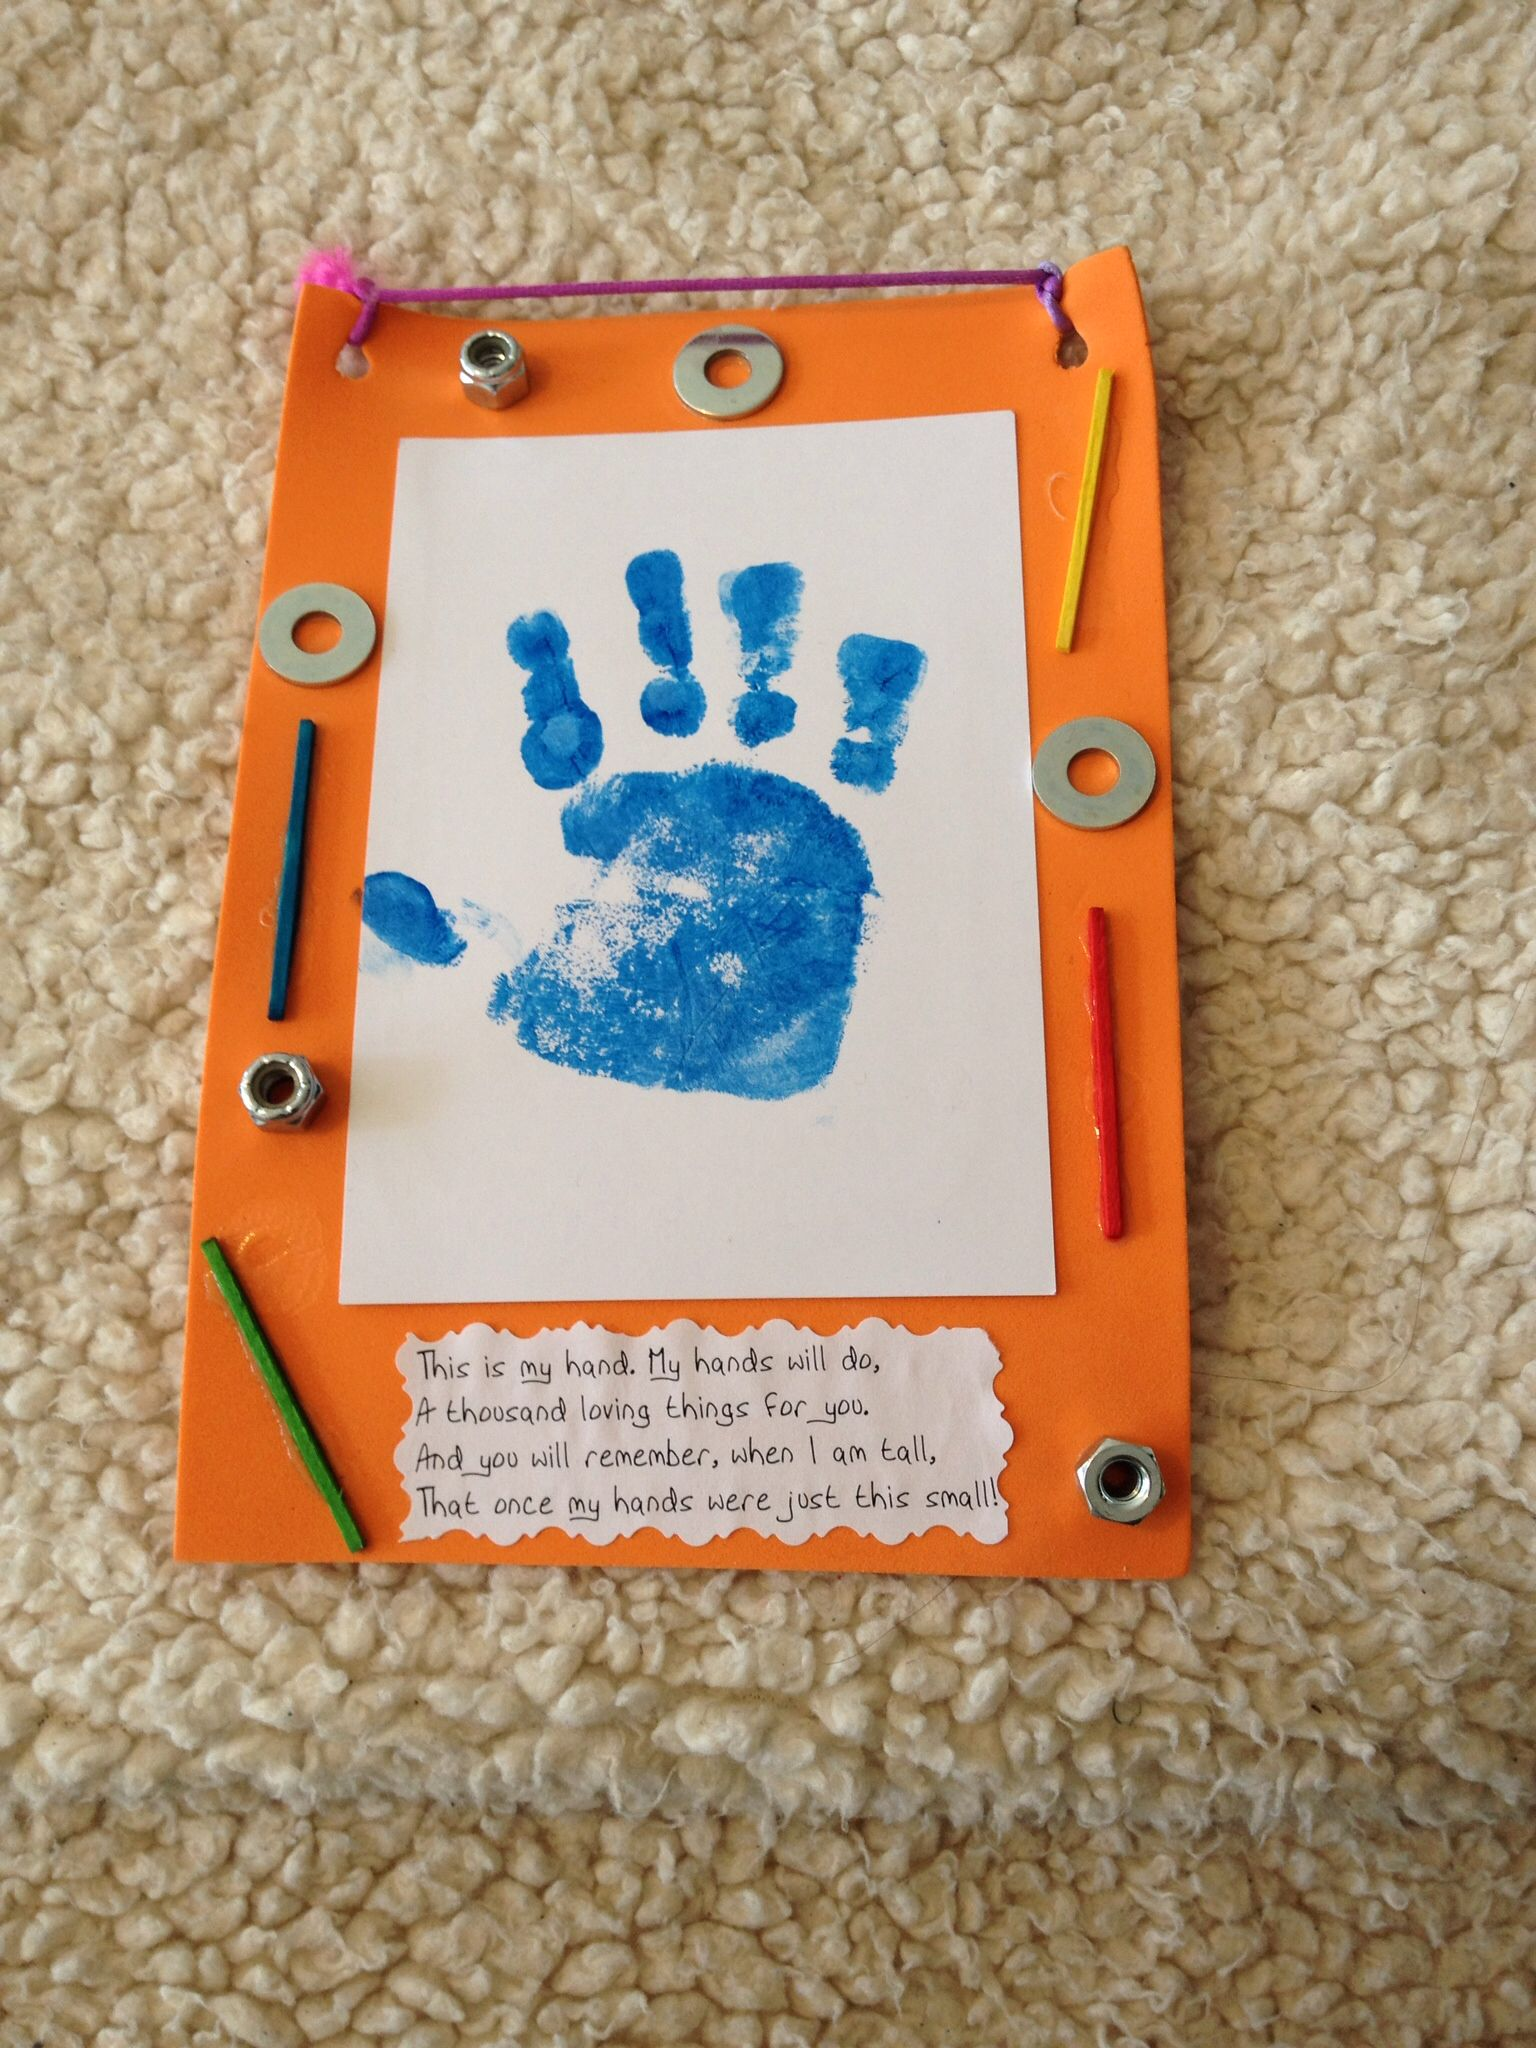 Fathers Day Toddler Craft Made With A Foam Frame Painted Handprint On Paper And Glued On Bolts Nuts Screws